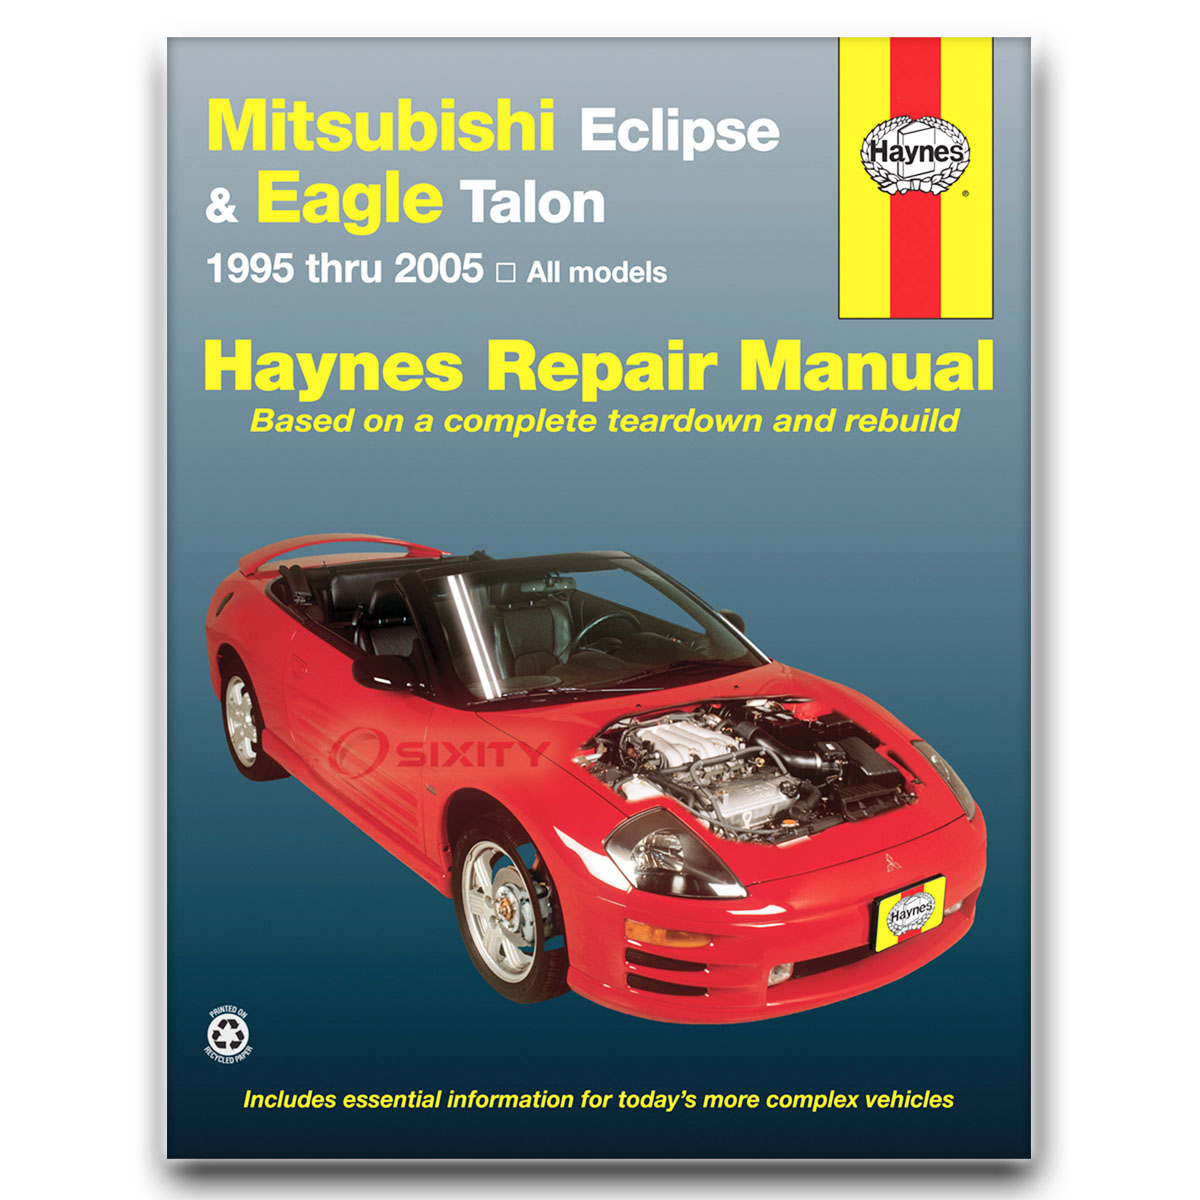 mitsubishi eclipse haynes repair manual gst gt gsx rs spyder gts rh ebay com 2003 mitsubishi eclipse service manual 2000 mitsubishi eclipse repair manual